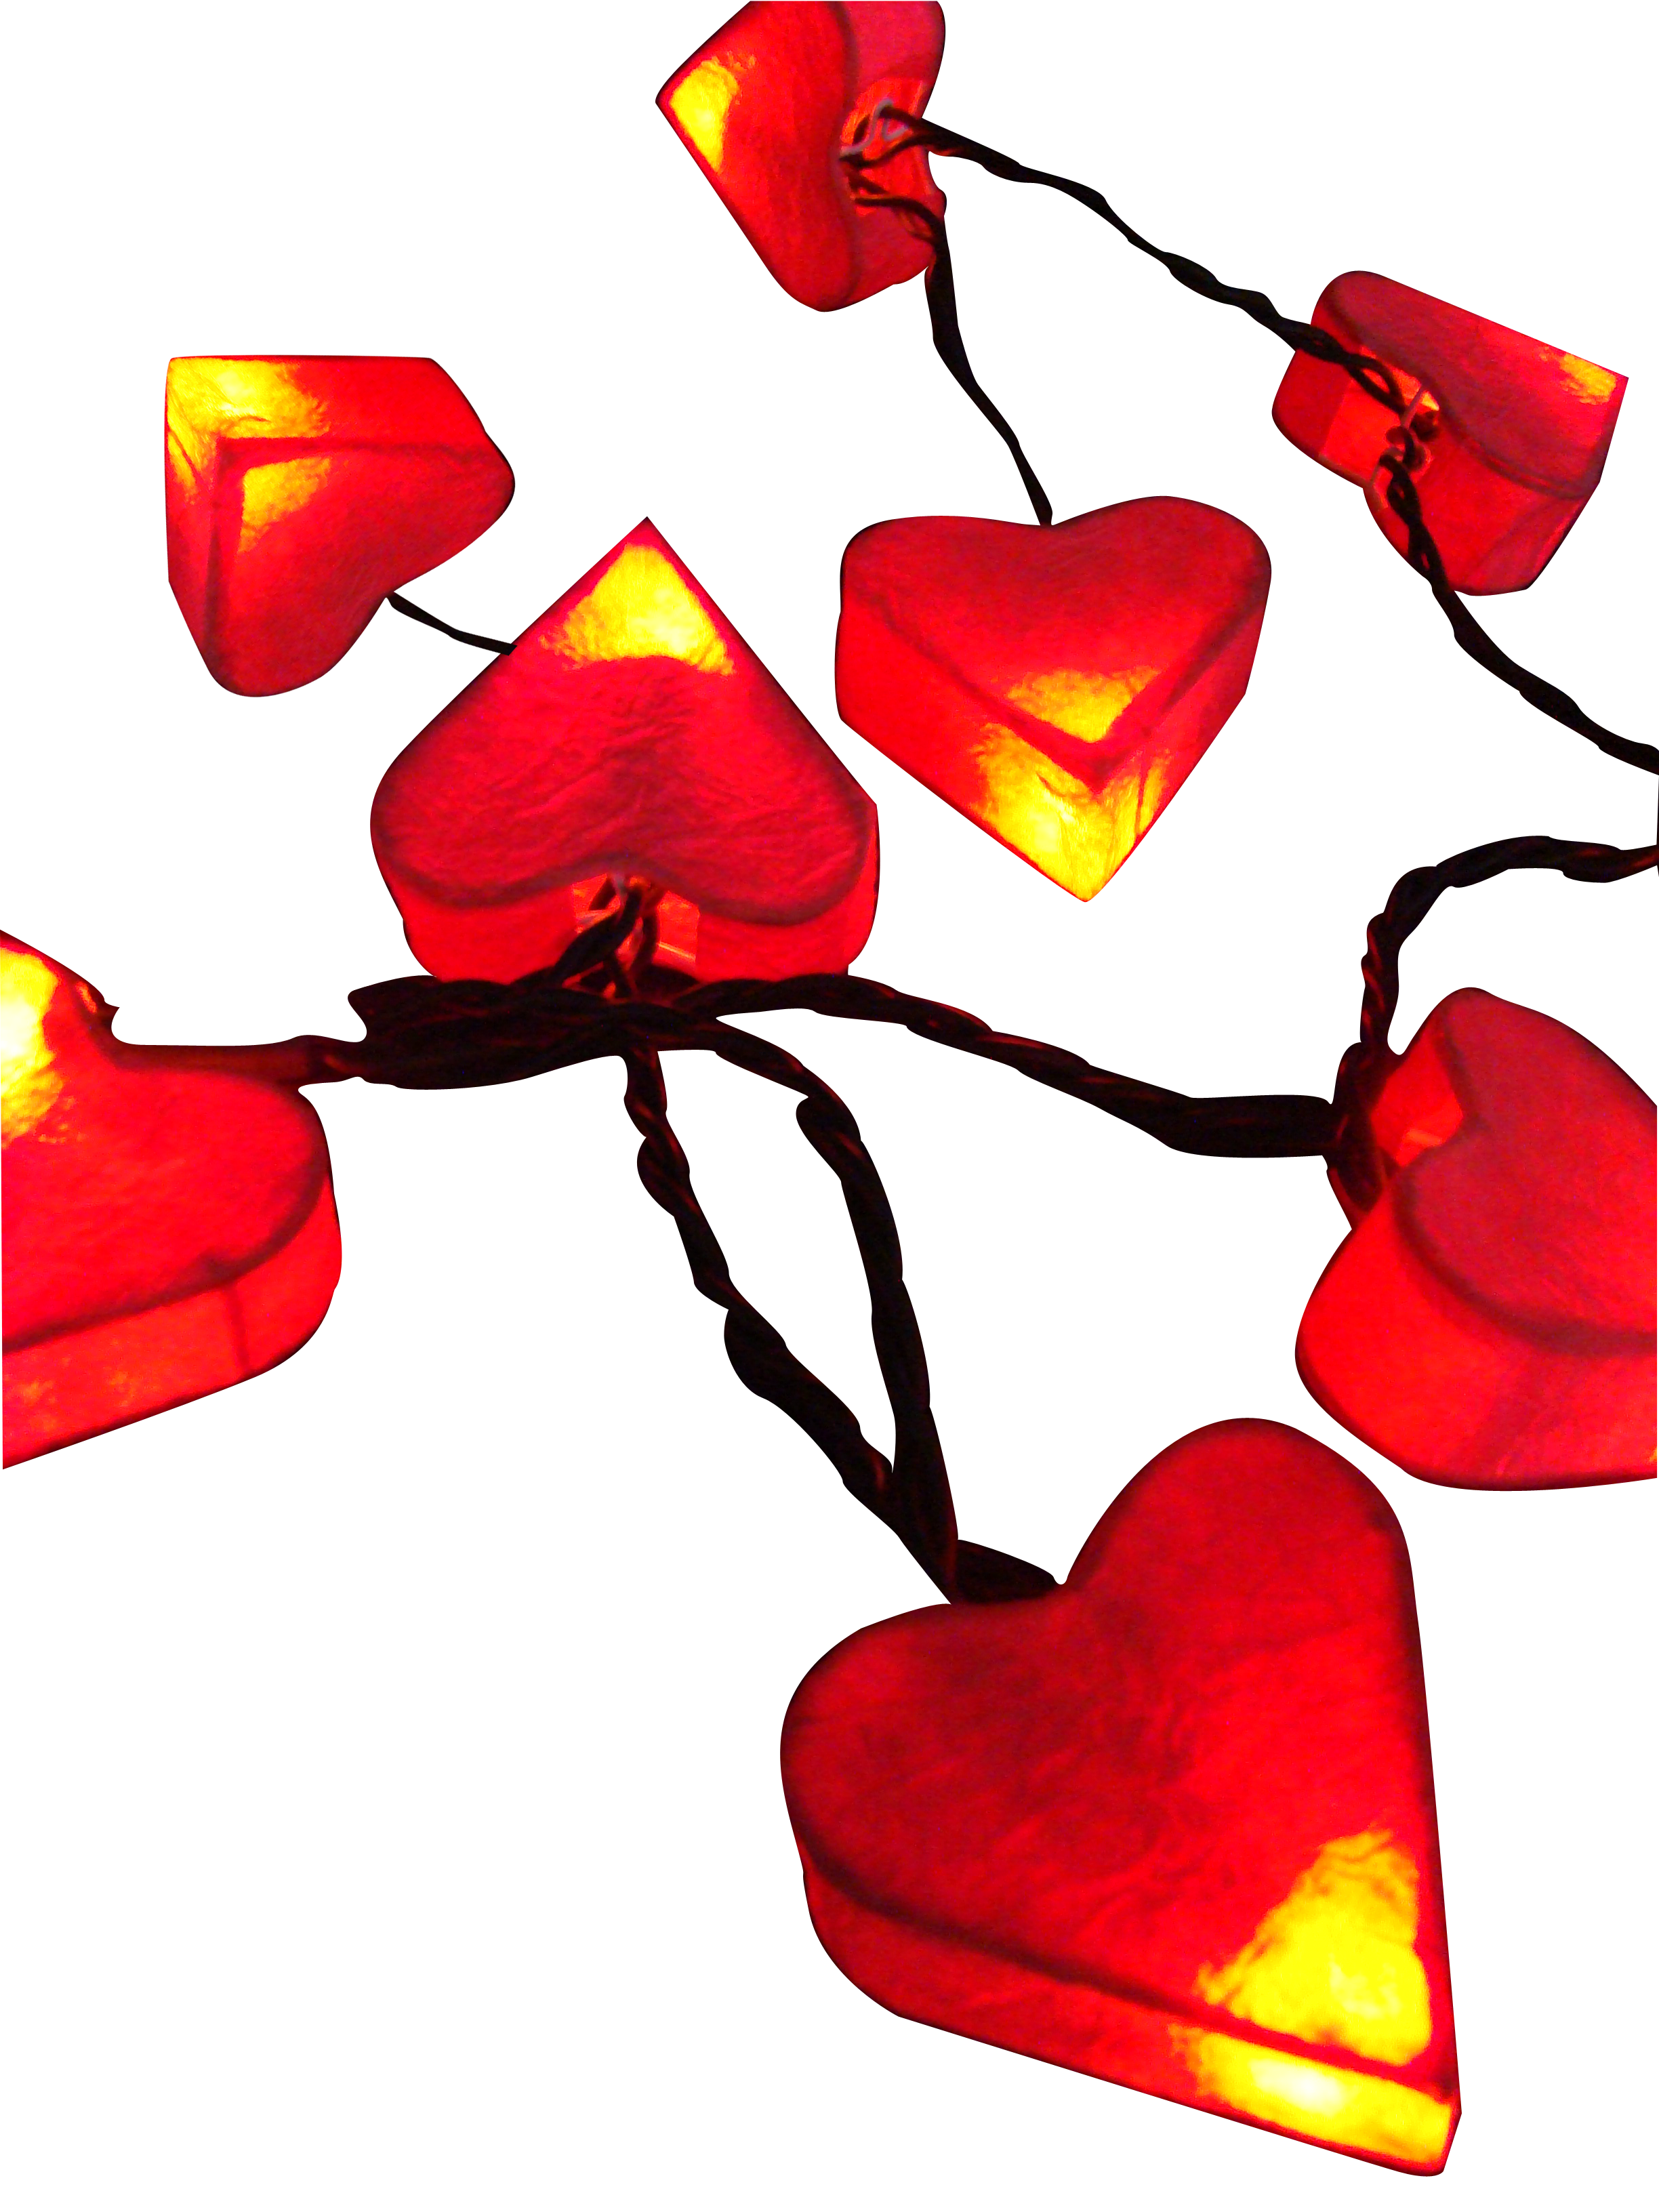 Garland red paper sweet heart shape LED battery string lights for party & event deco.